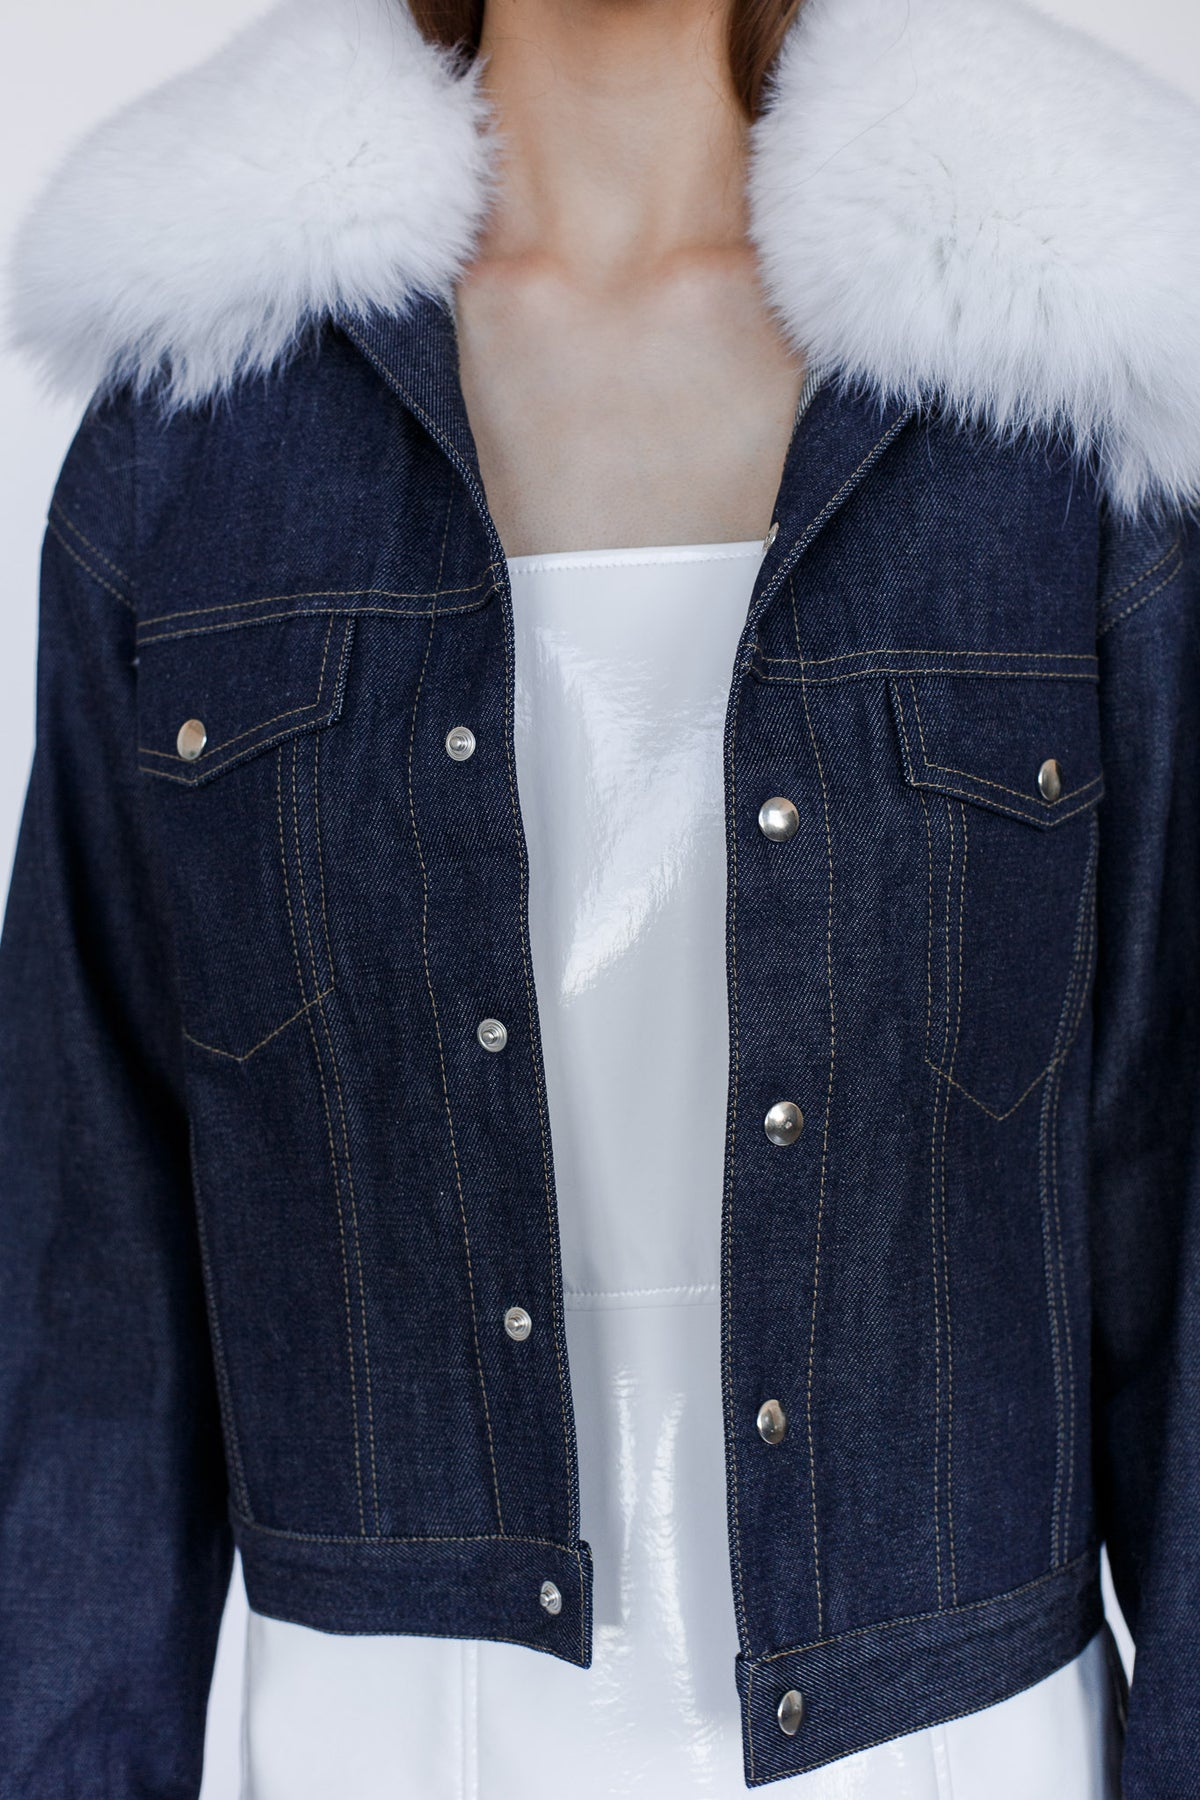 Genes-Blue-Denim-Jacket-With-Attachable-white-Fox-Fur-Collar-details.jpg